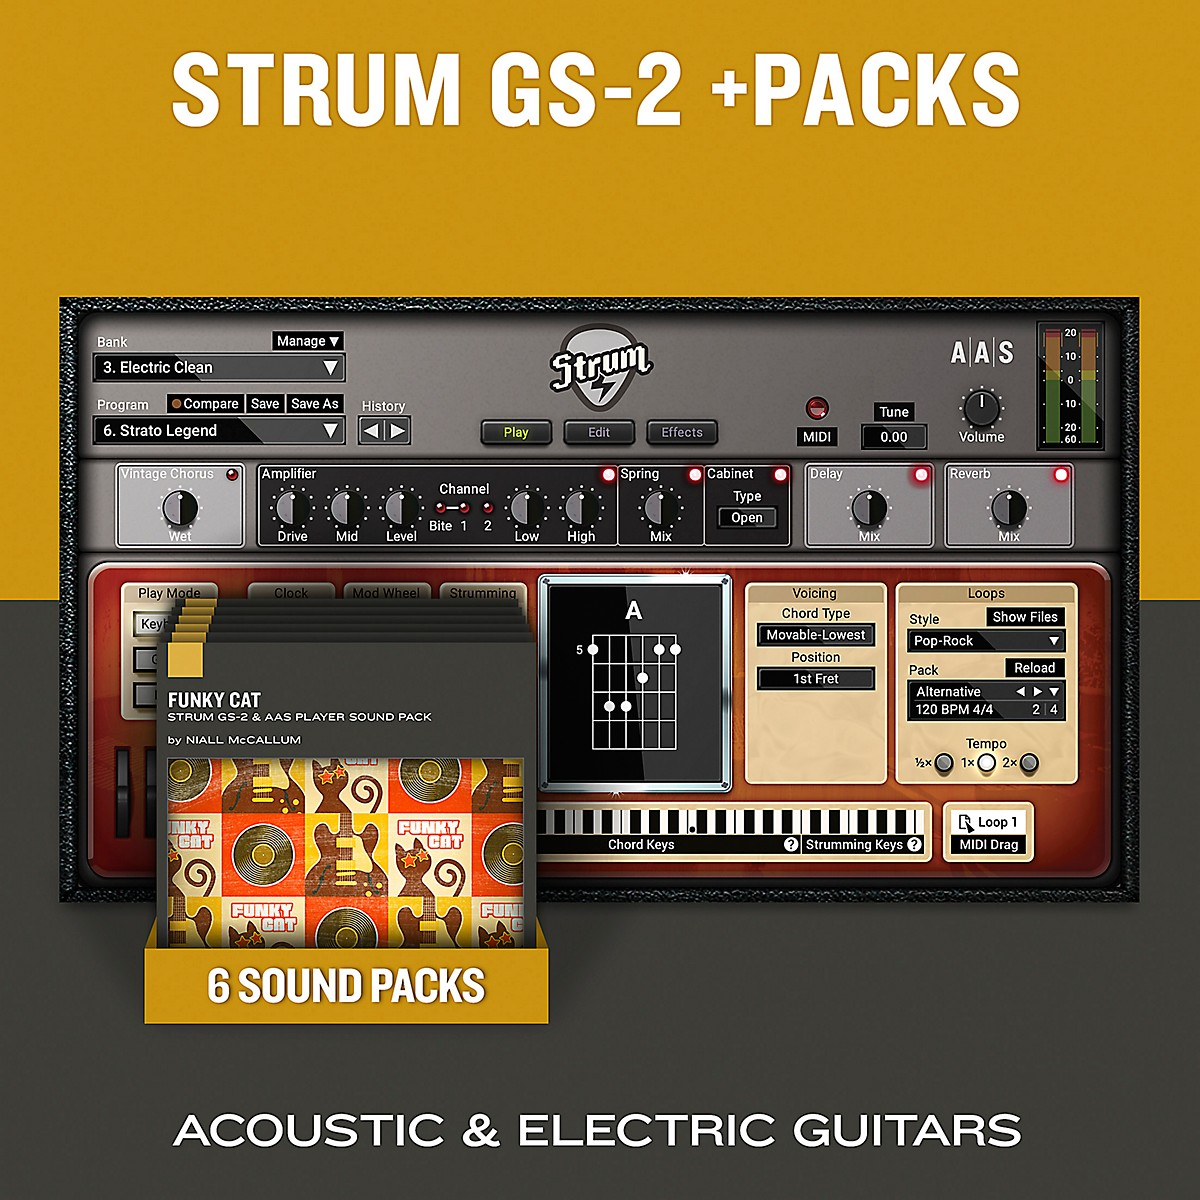 Applied Acoustics Systems Funky Cat - Sound Pack for the Free AAS Player or Strum GS-2 (Download)